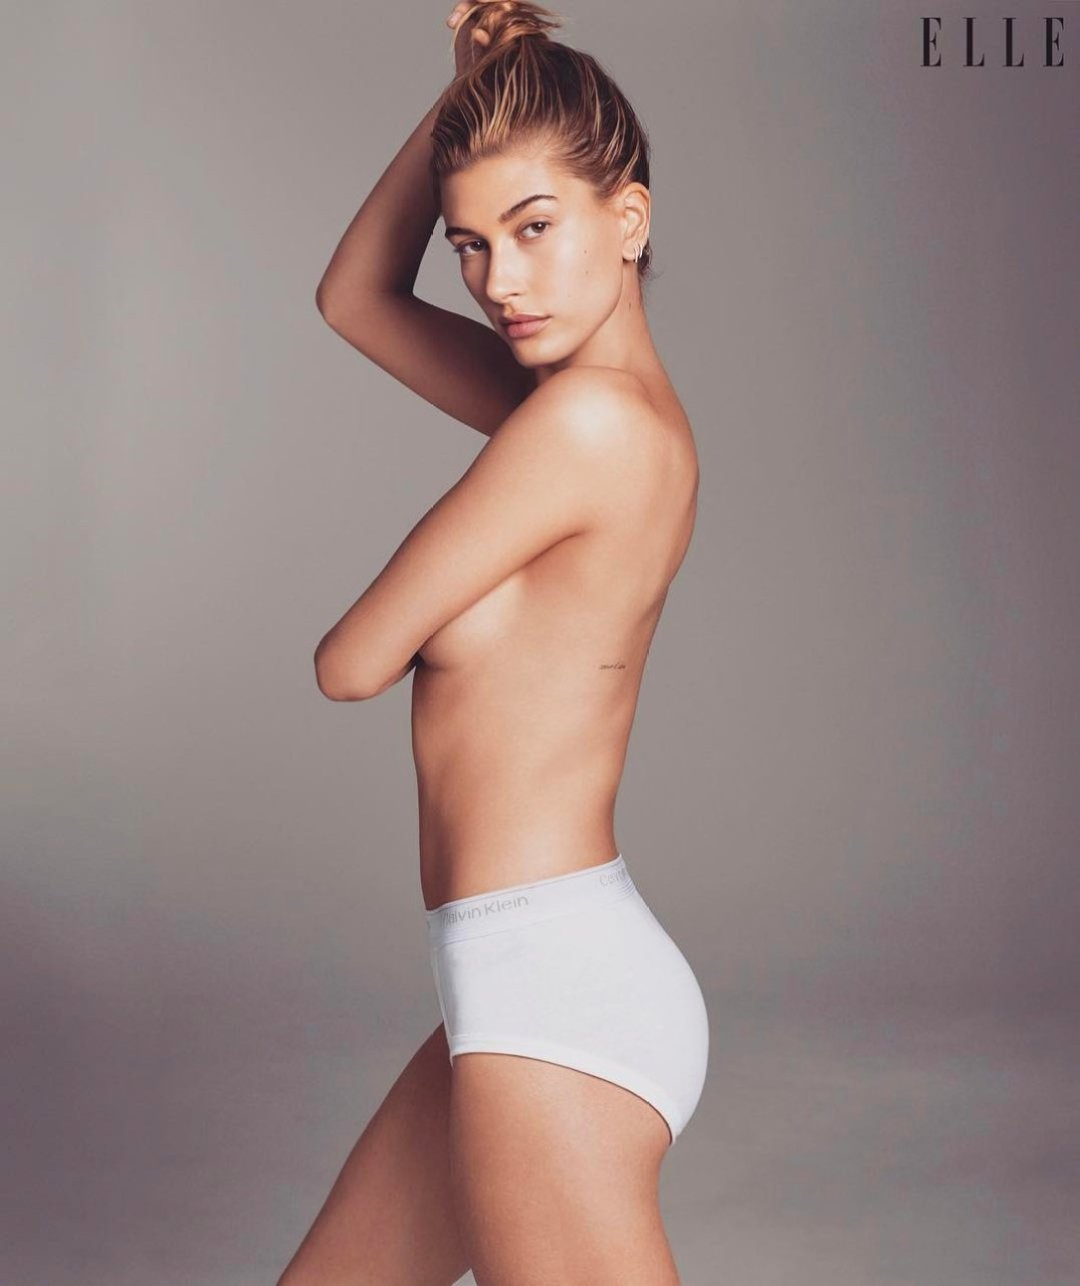 The 21-year-old model Hailey Baldwin is quite the stunner